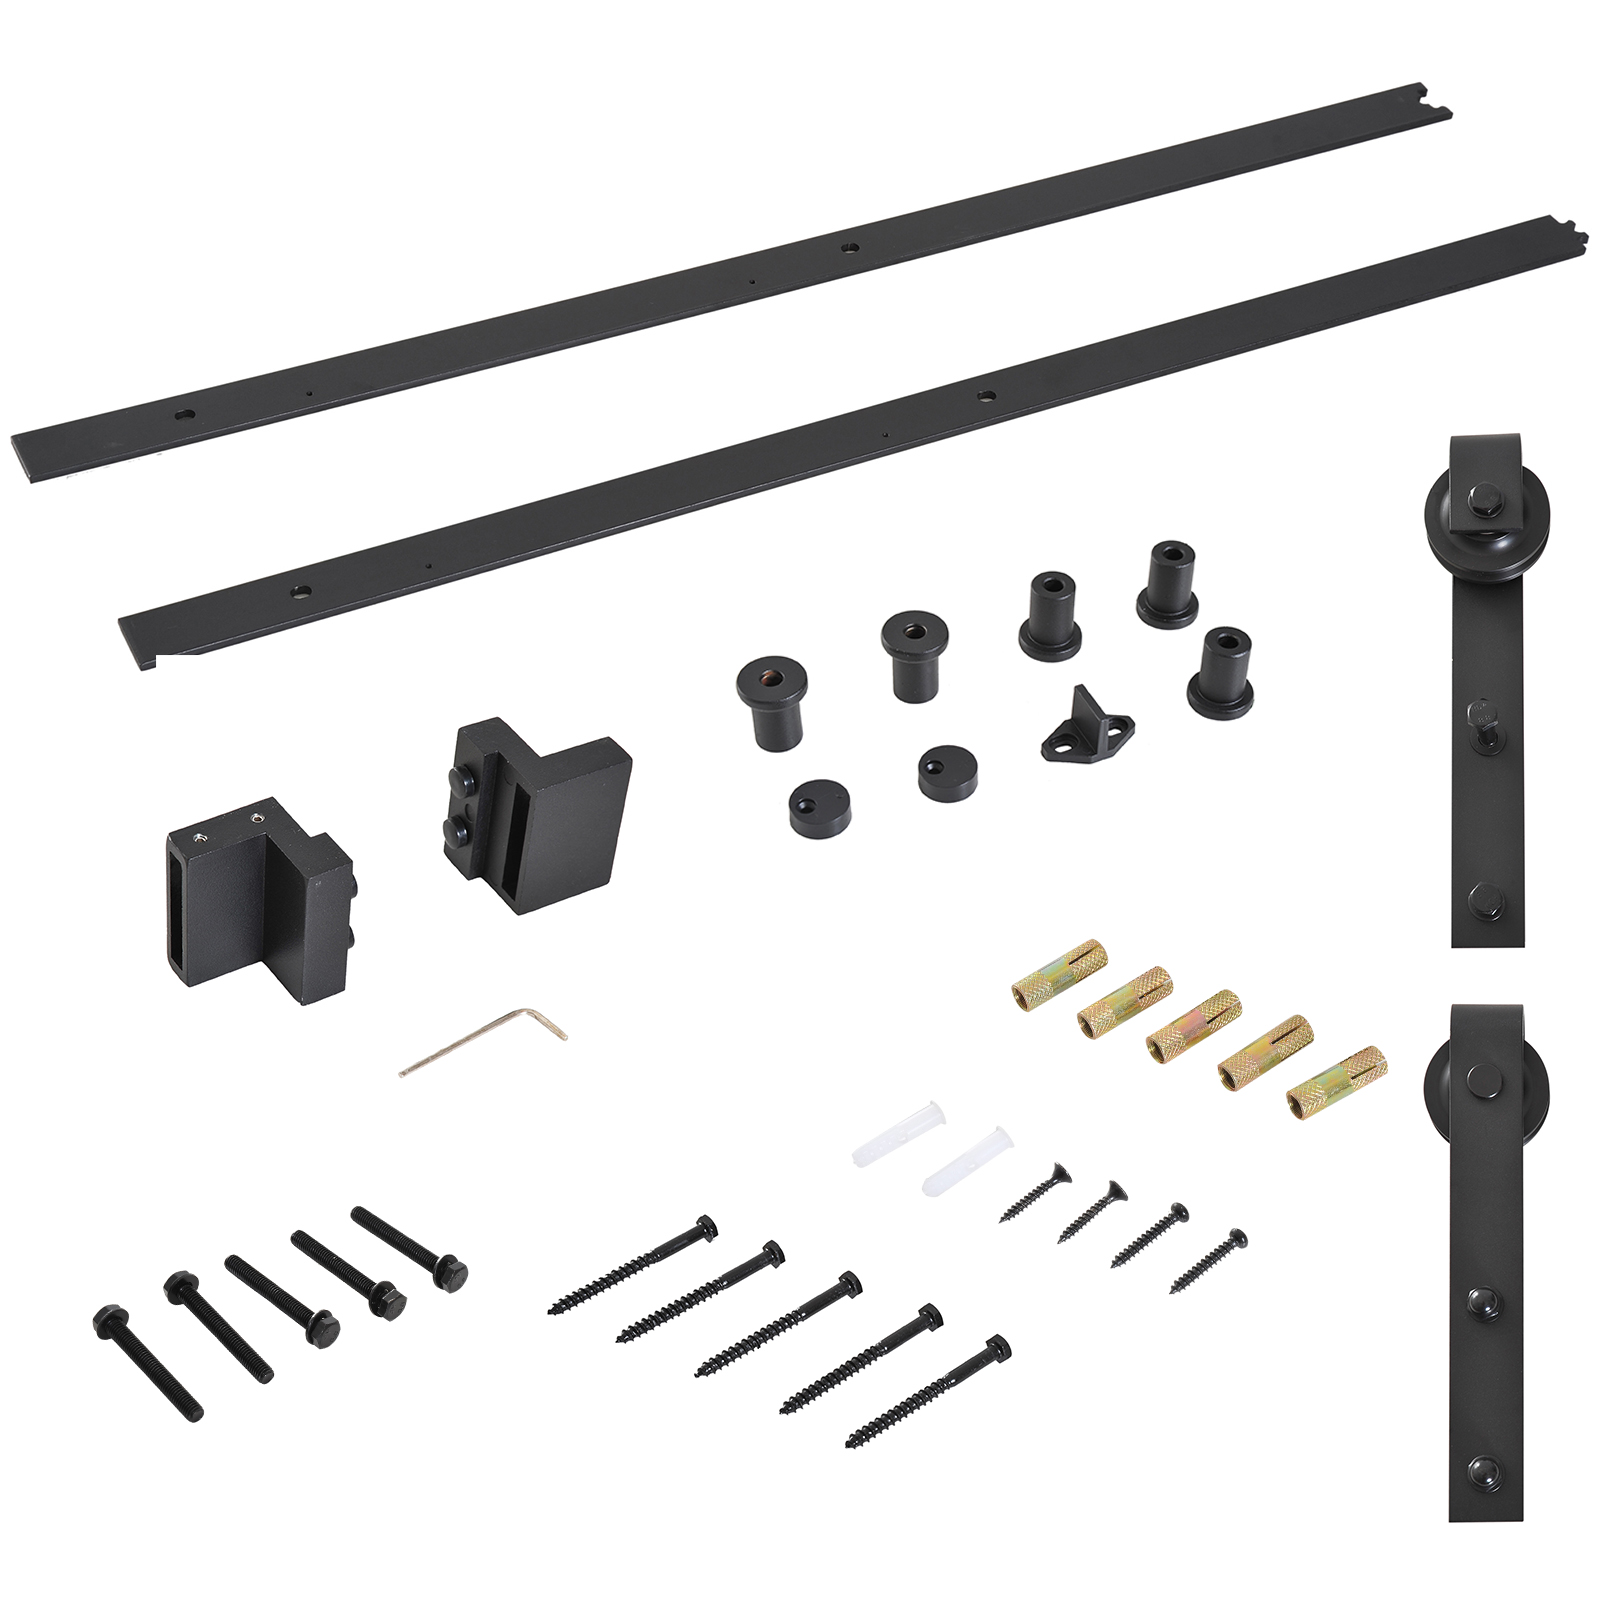 HOMCOM Rail For Sliding Door Rustic Accessories Kit With Carbon Steel Roller Caps Thick 3,4-4cm Black